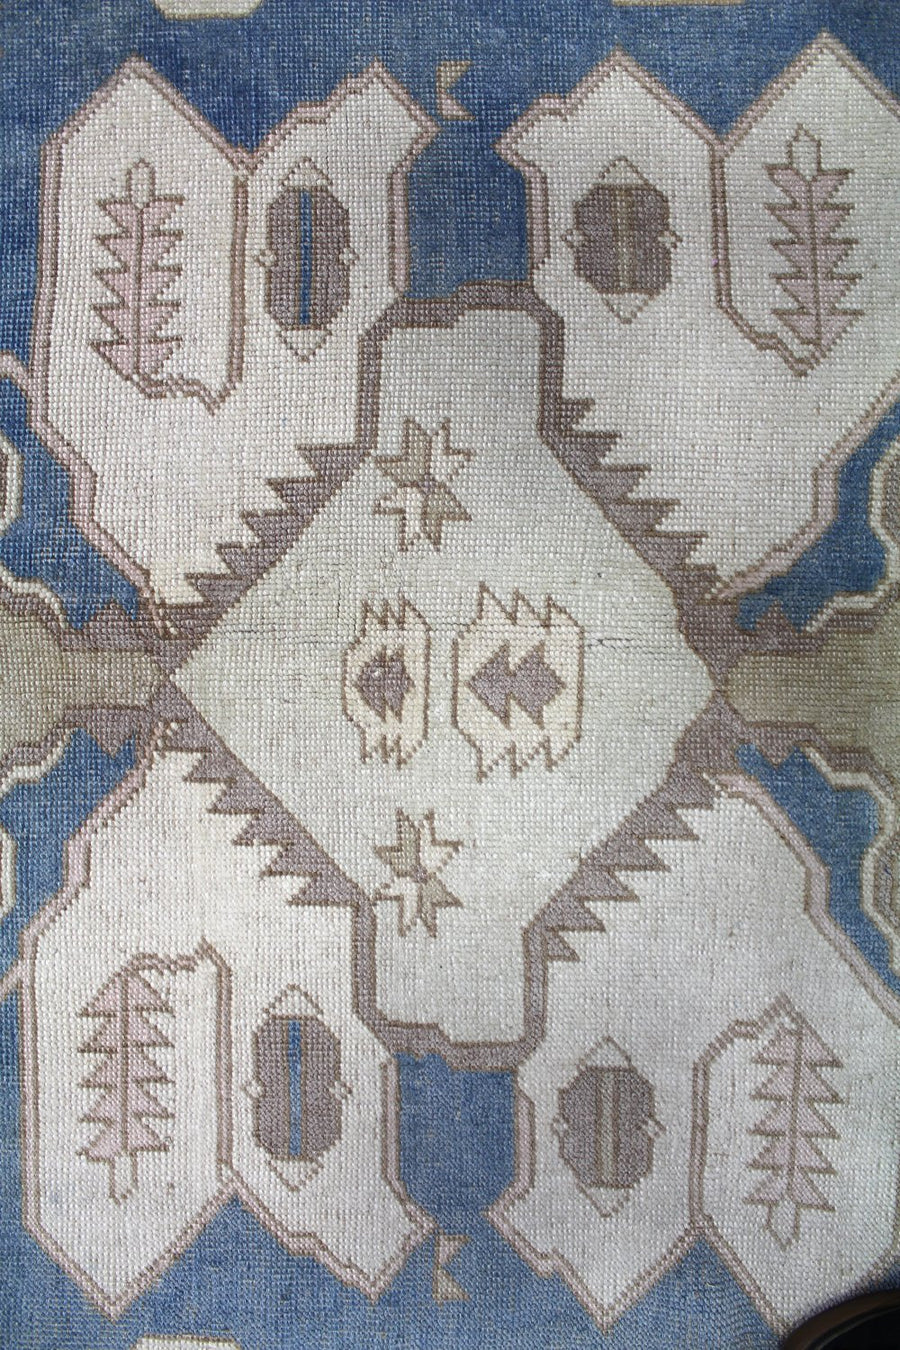 SULTANHAN HANDKNOTTED RUG, J58756